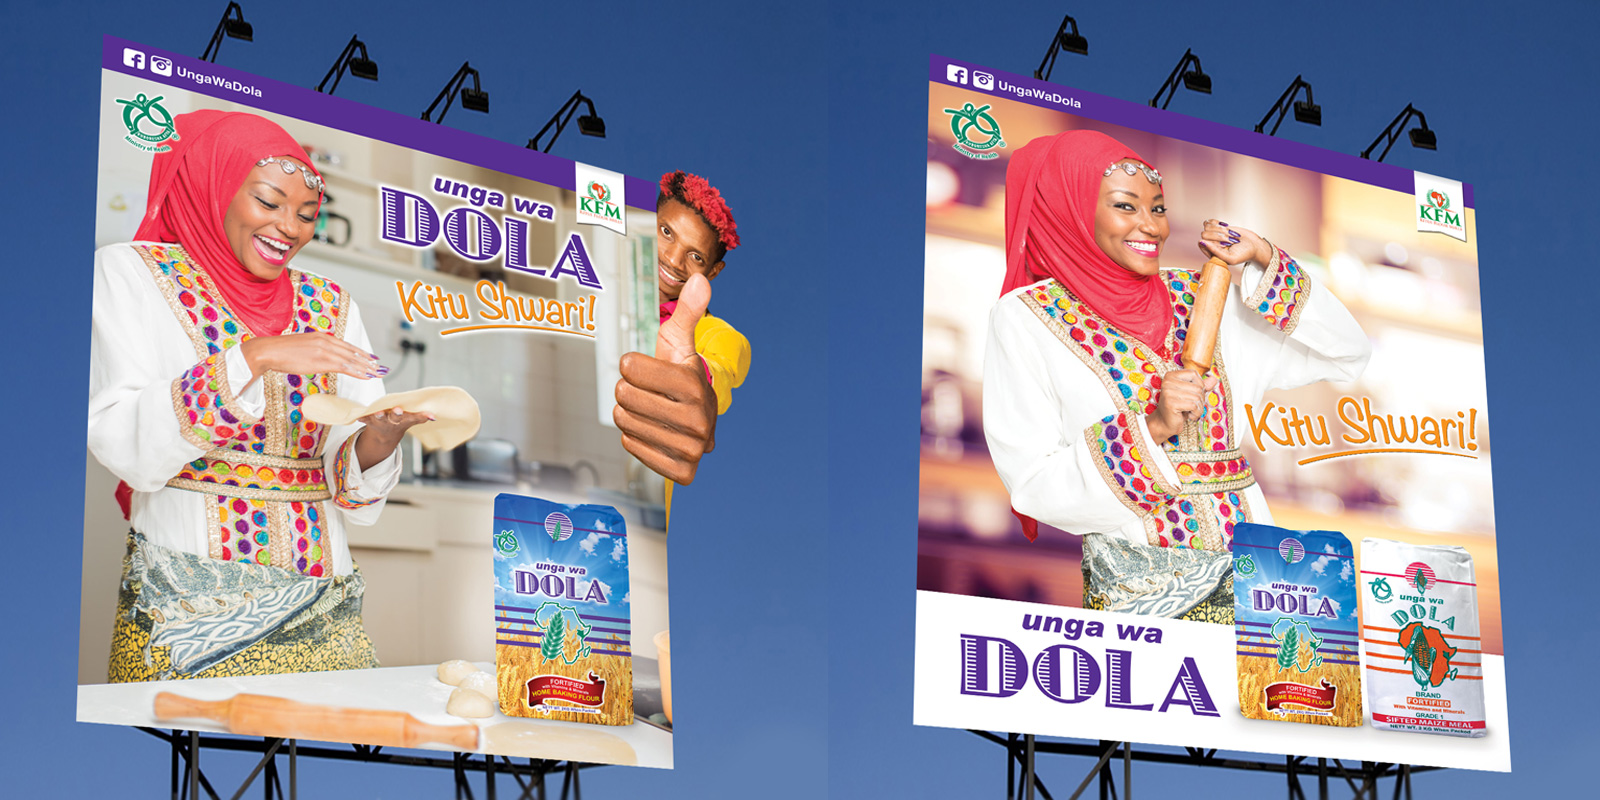 3-unga-wa-dola-billboards